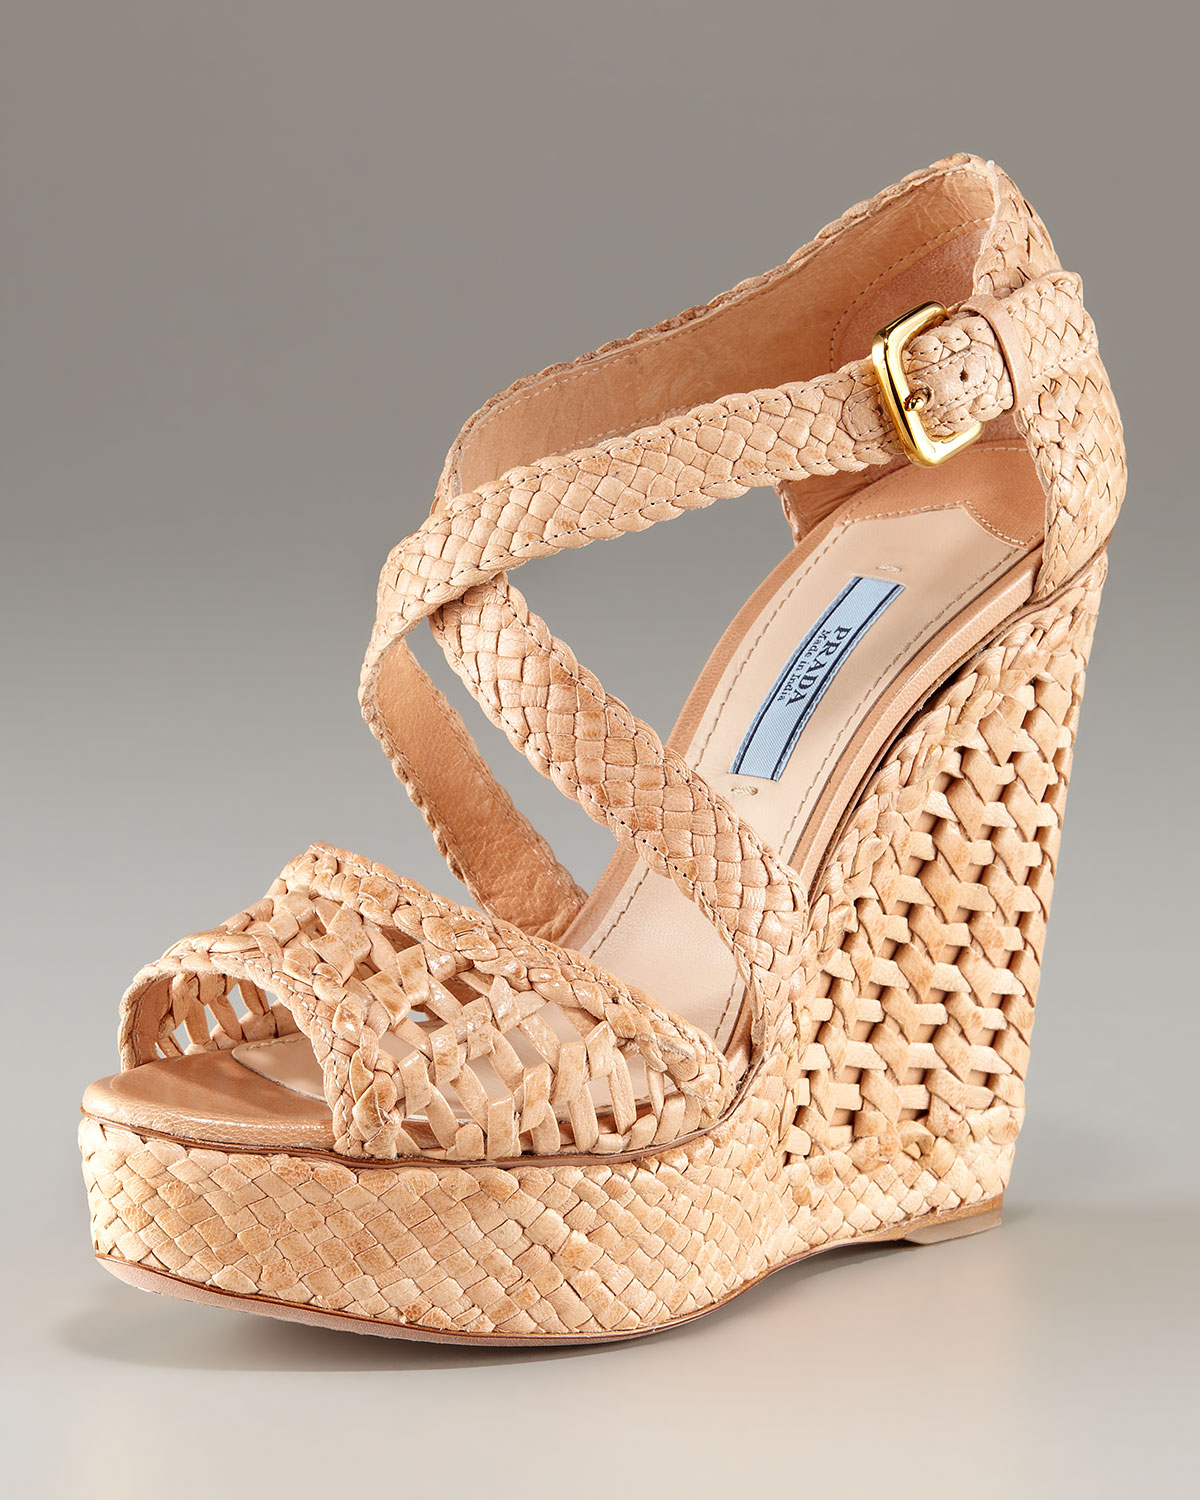 Prada Woven Jewel-Embellished Sandals new styles for sale buy cheap fake xyqyBb2M4